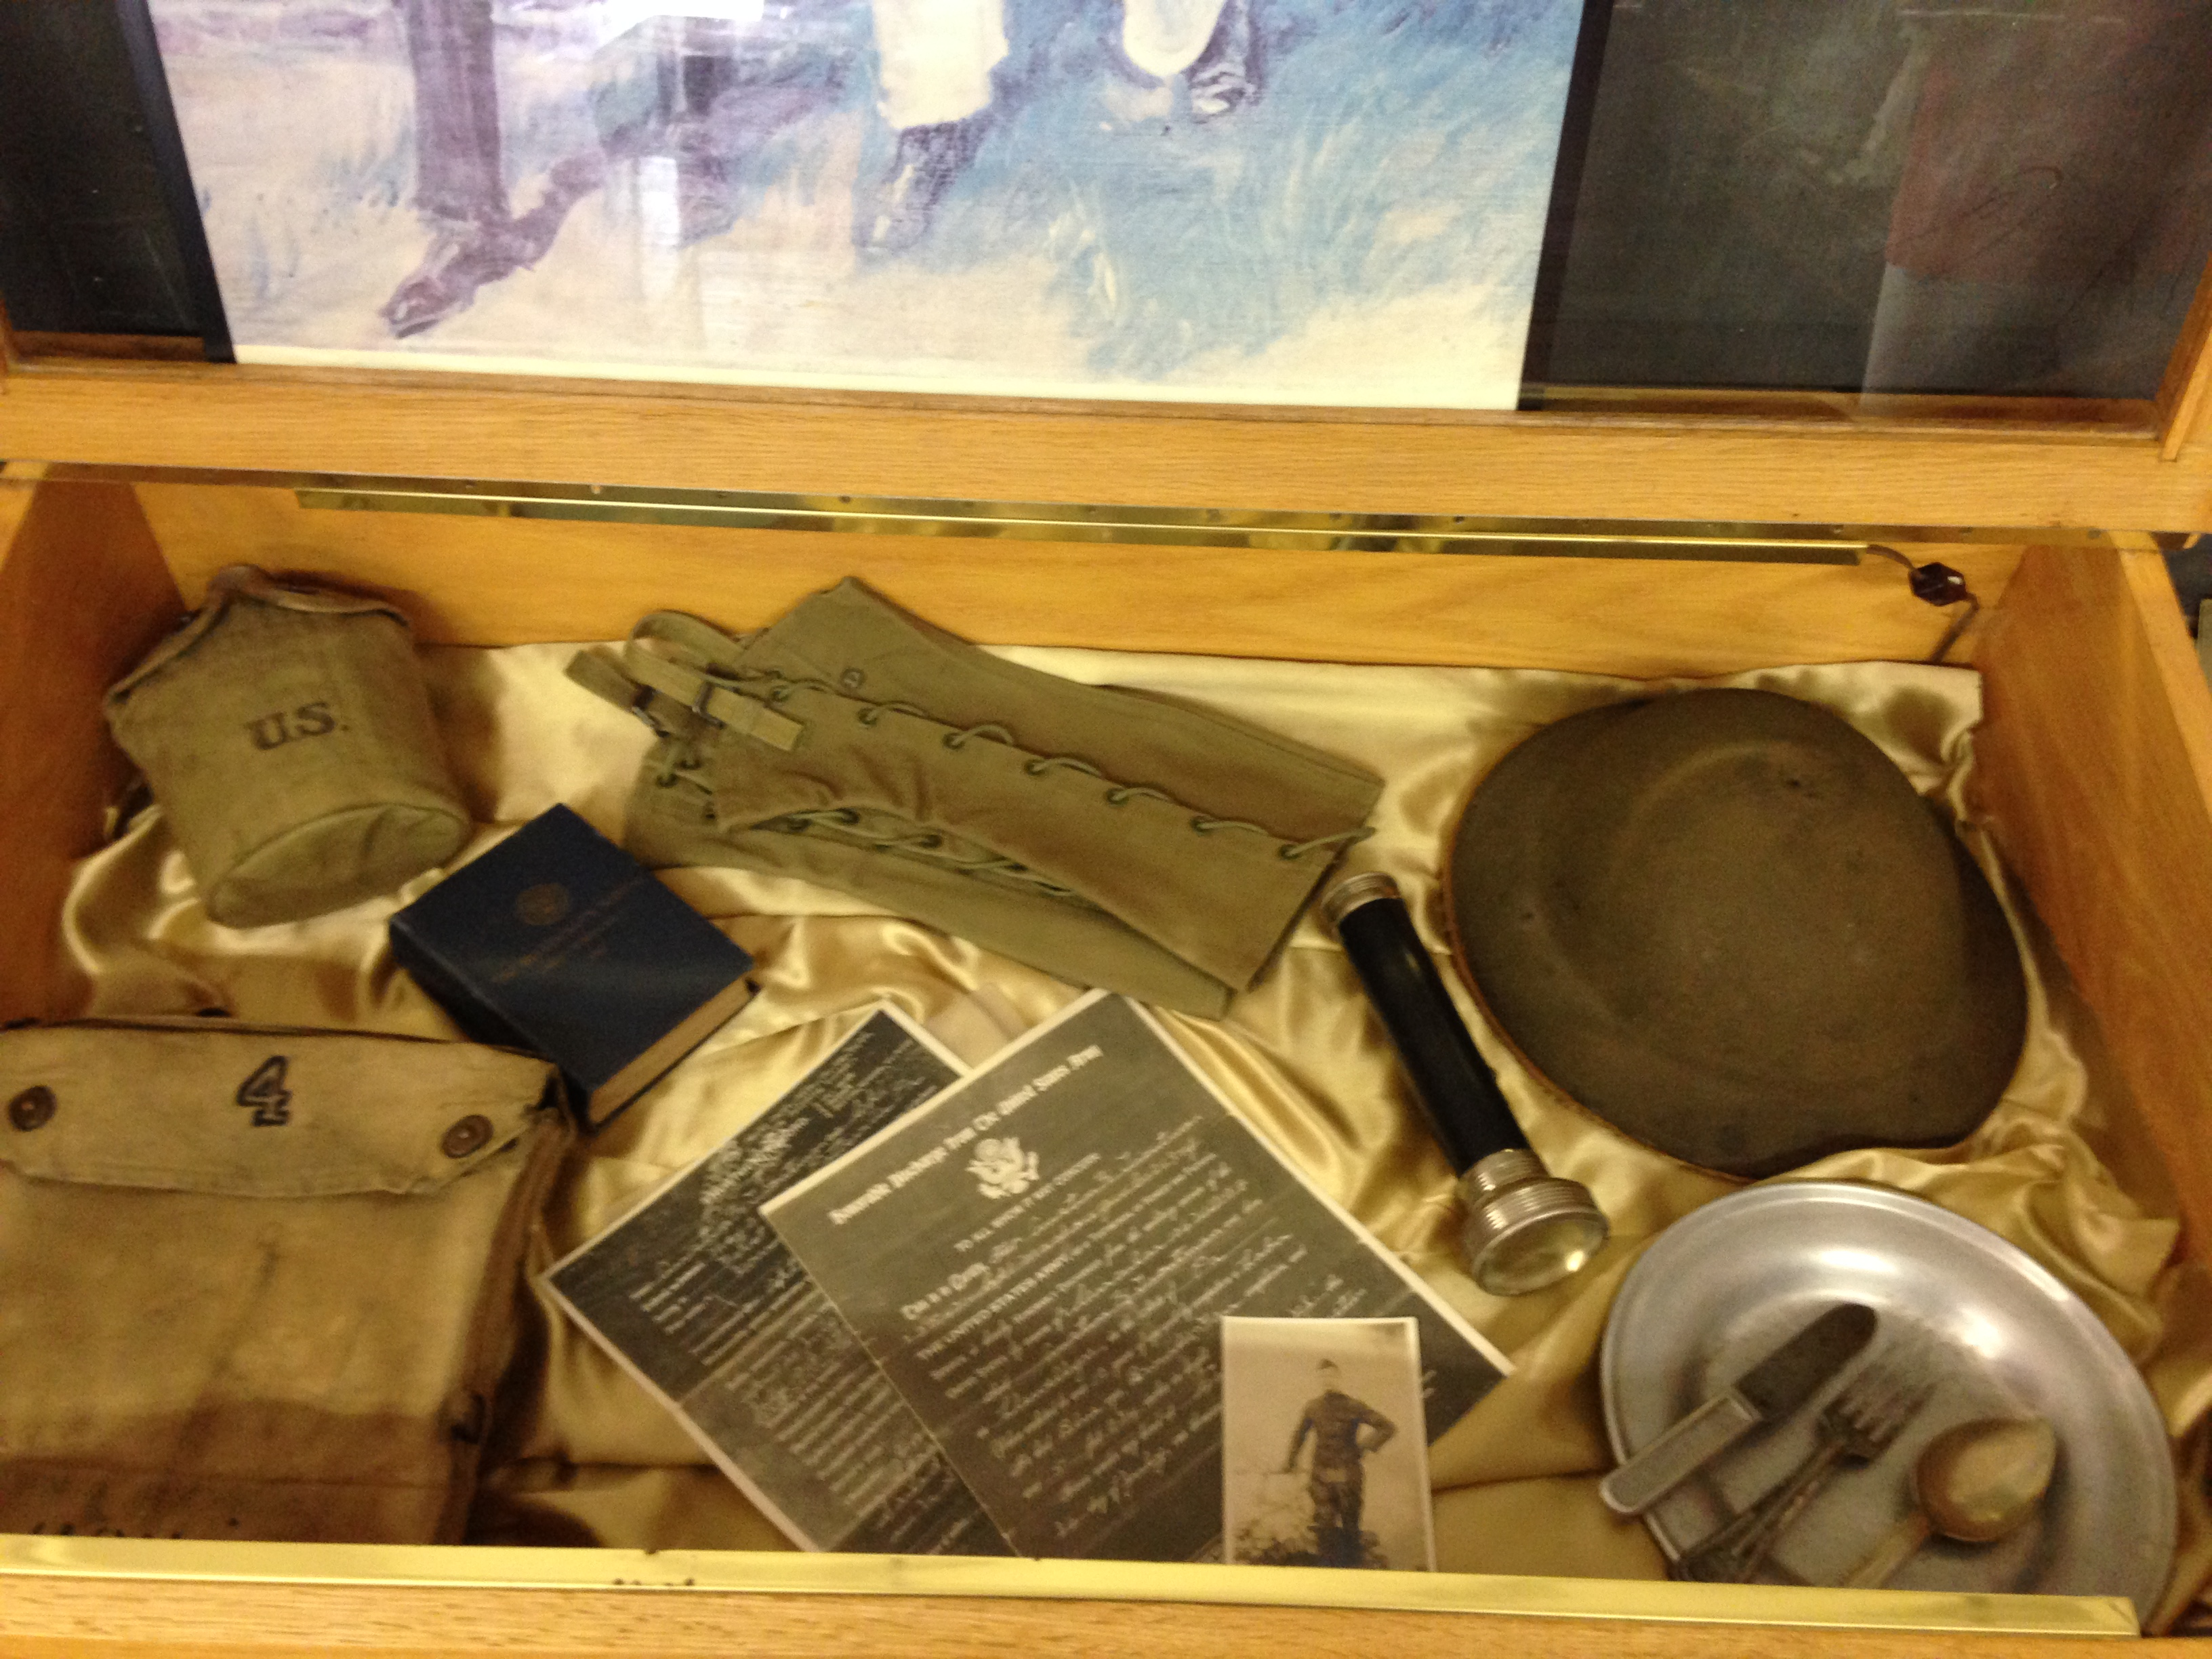 WVHS WW1 artifacts